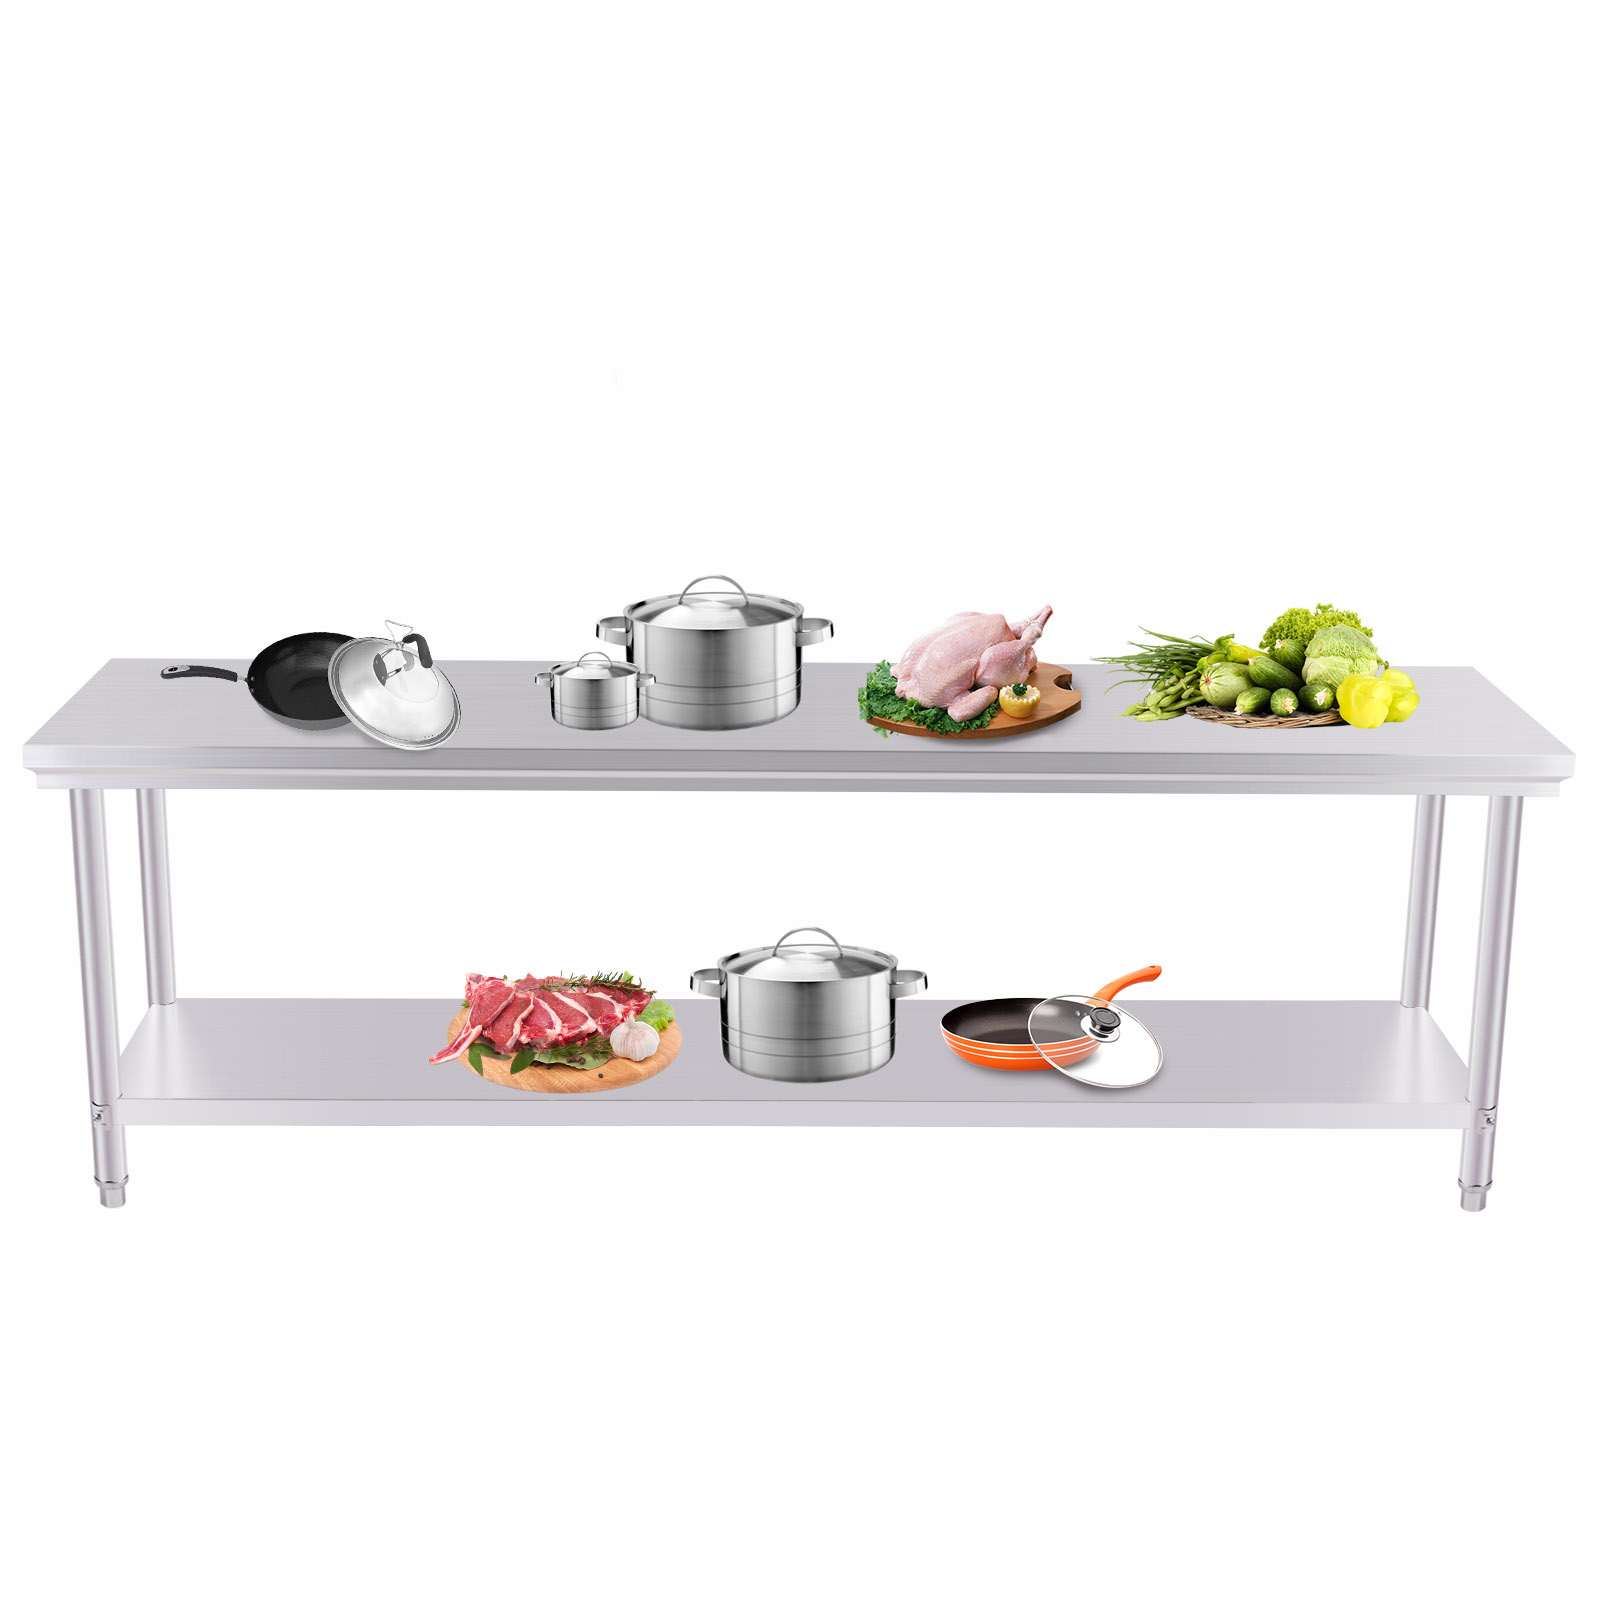 201 commercial stainless steel kitchen work bench top food for Table cuisine 60 x 80